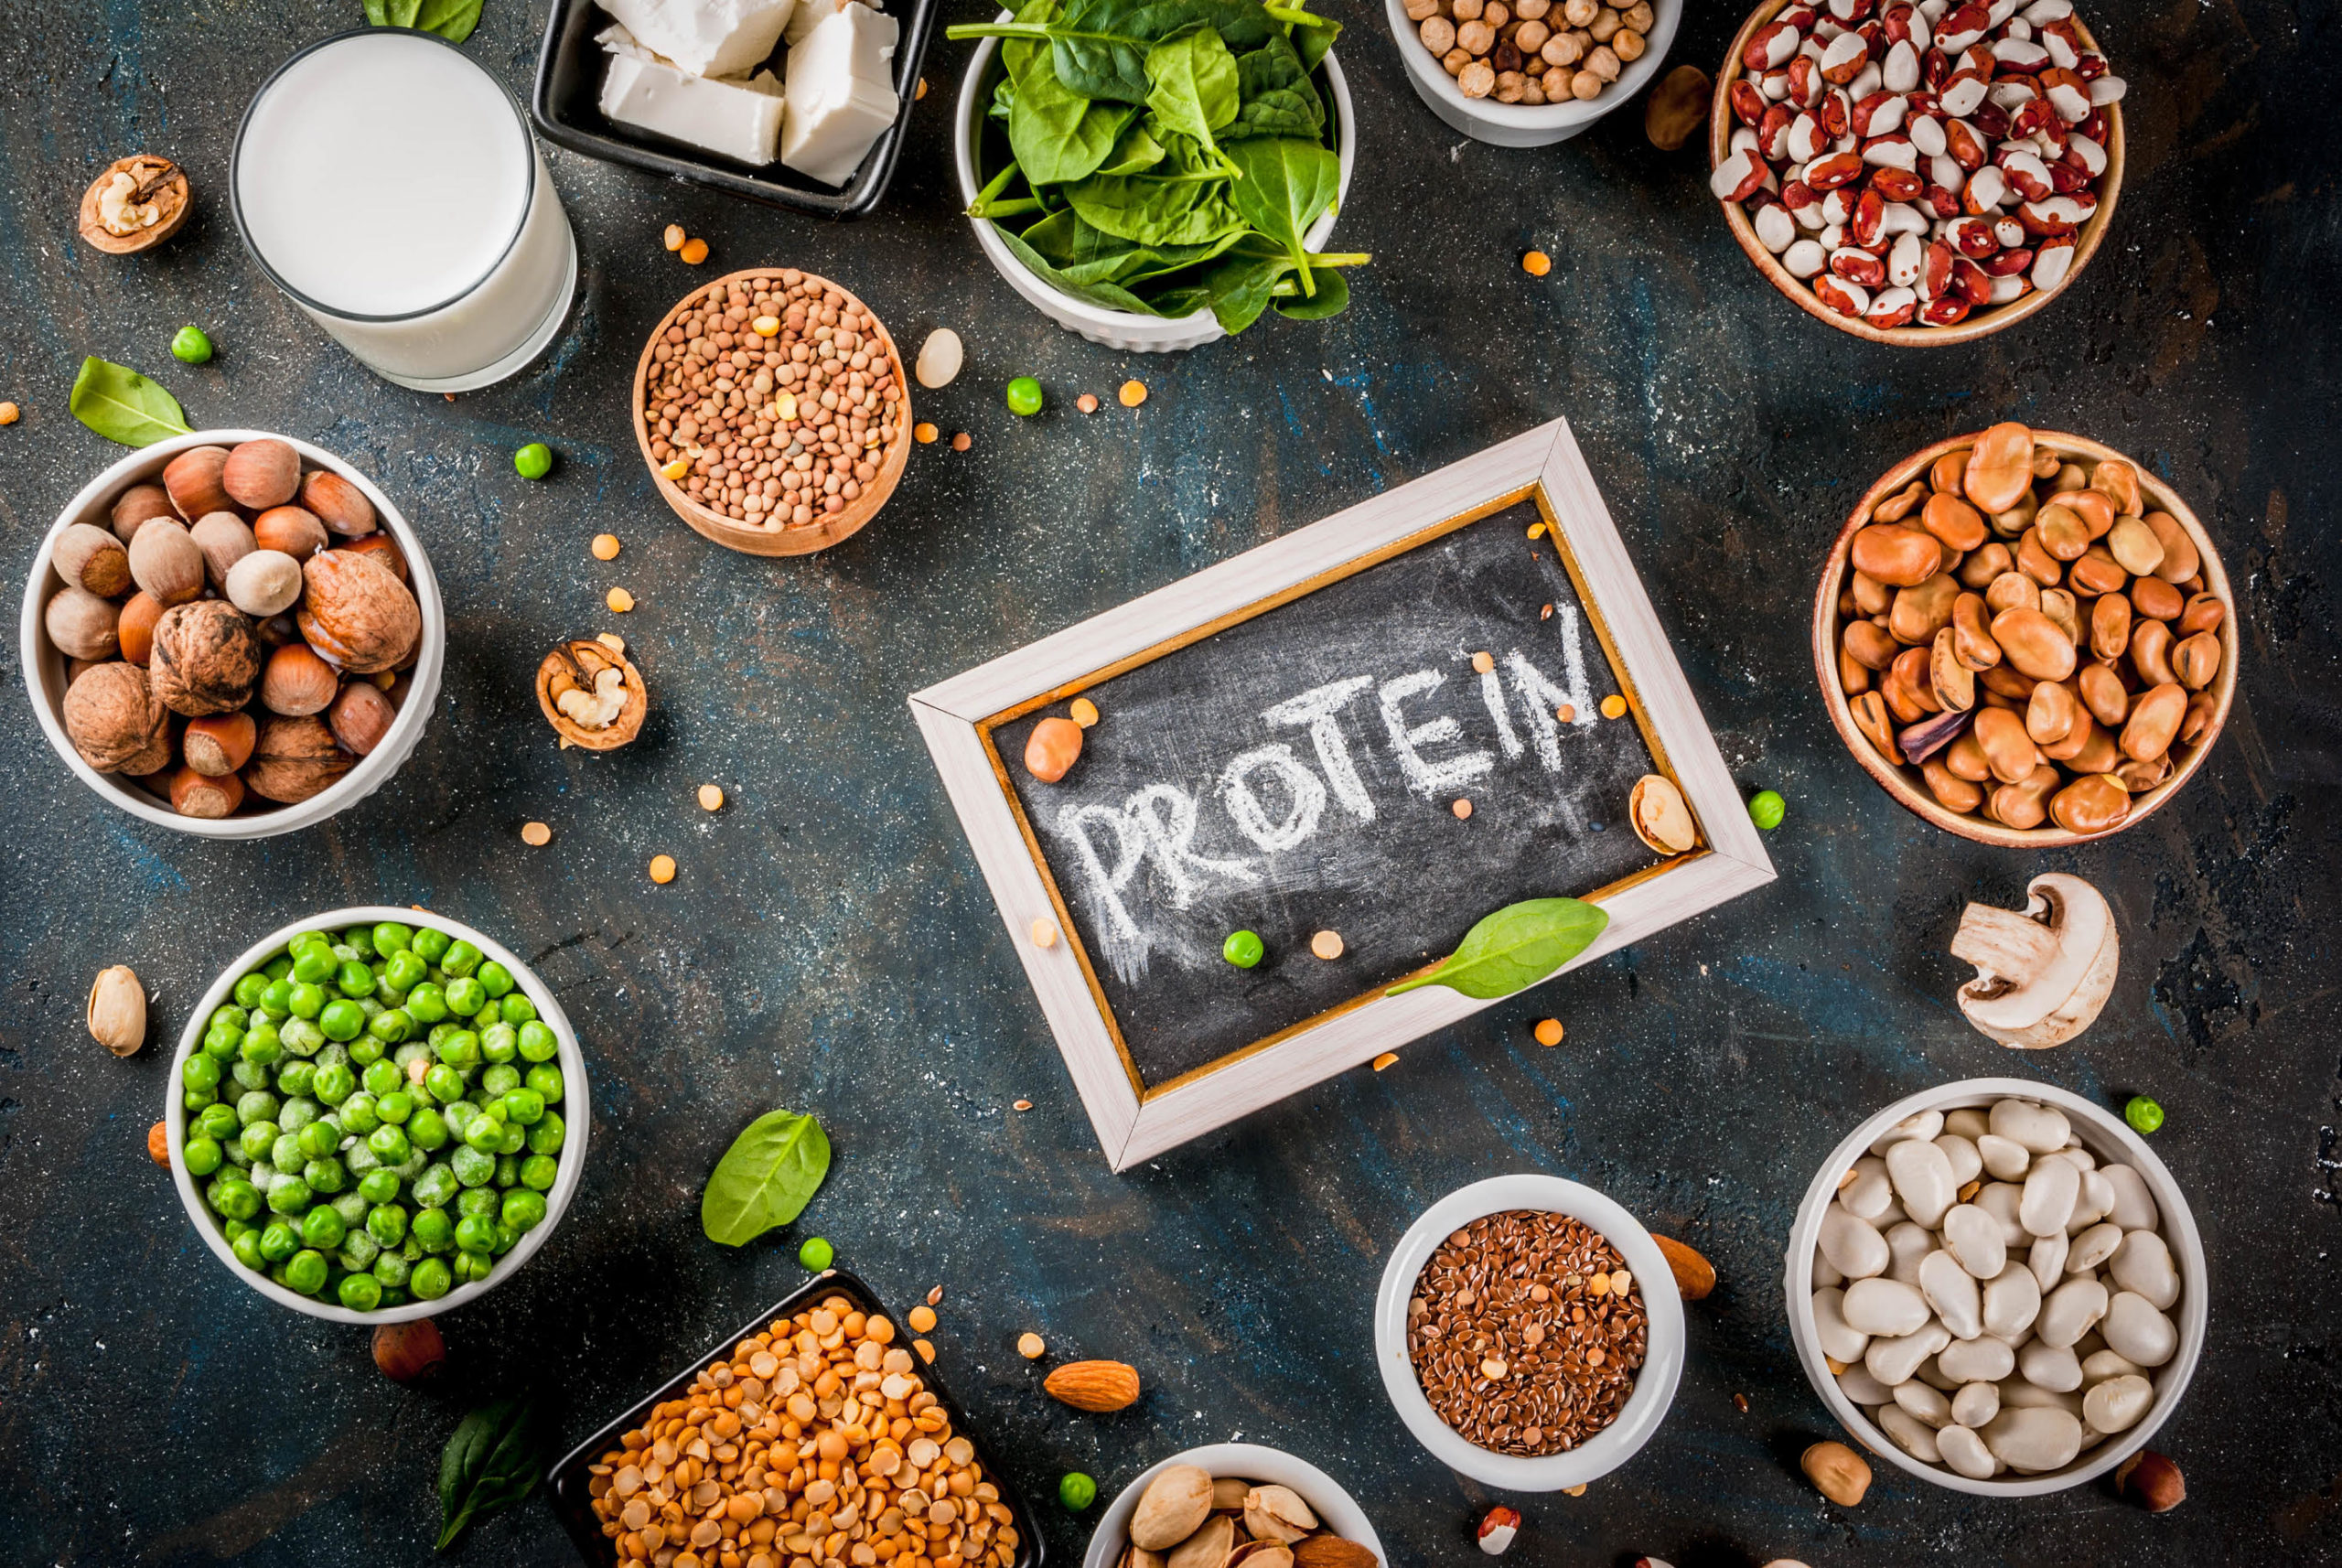 Plant-Based Series: Are You Getting Enough Protein?